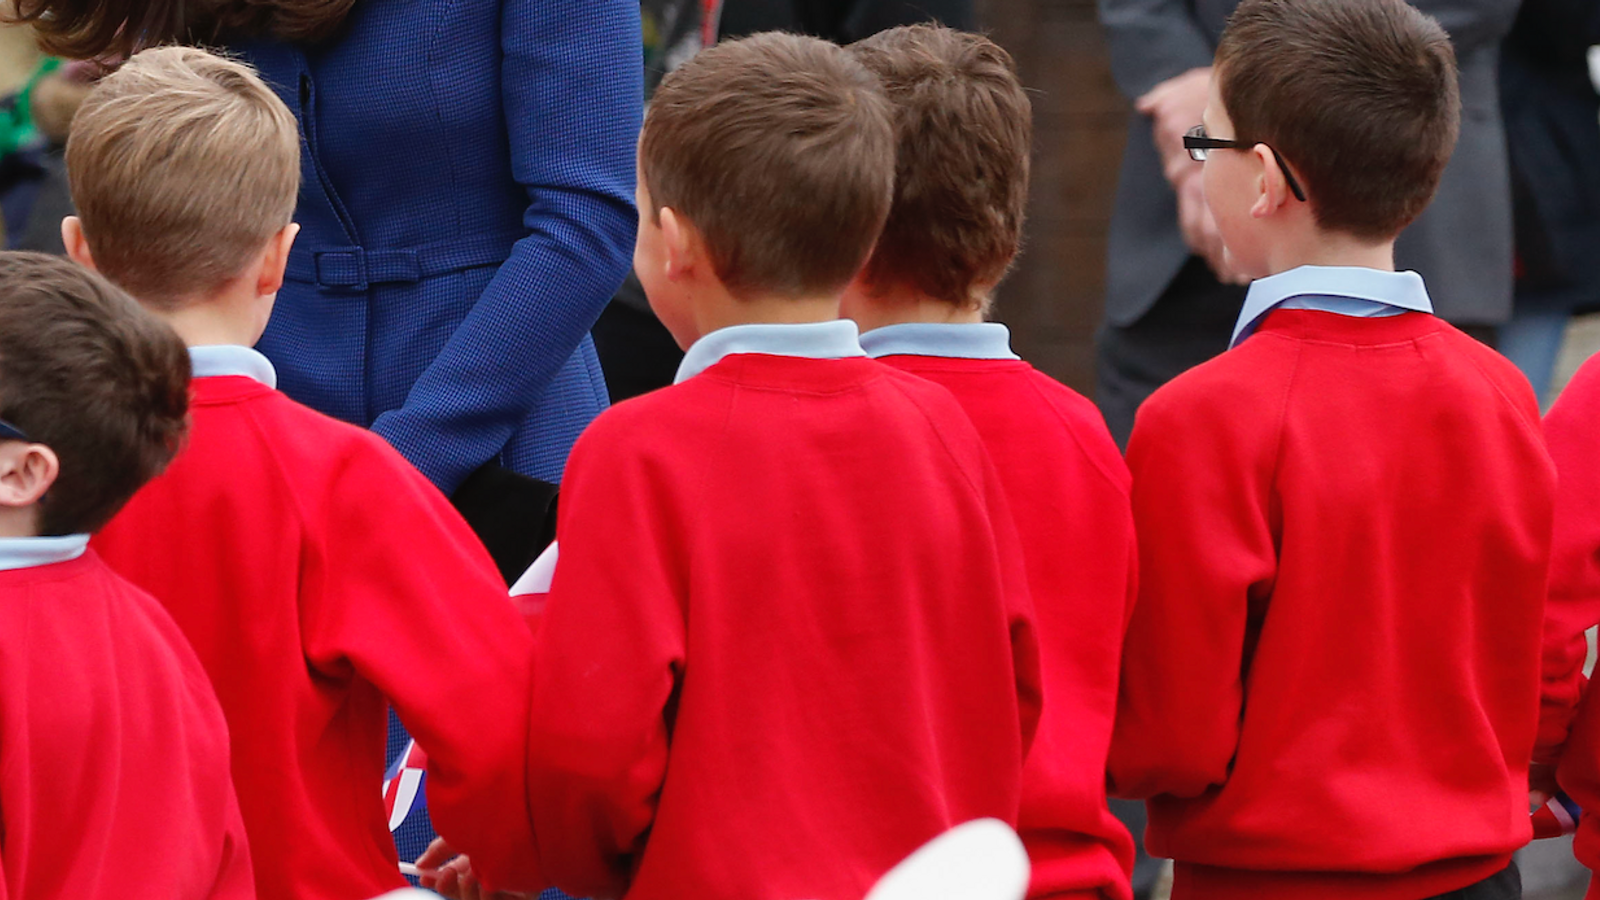 Facial recognition used to take payments from schoolchildren